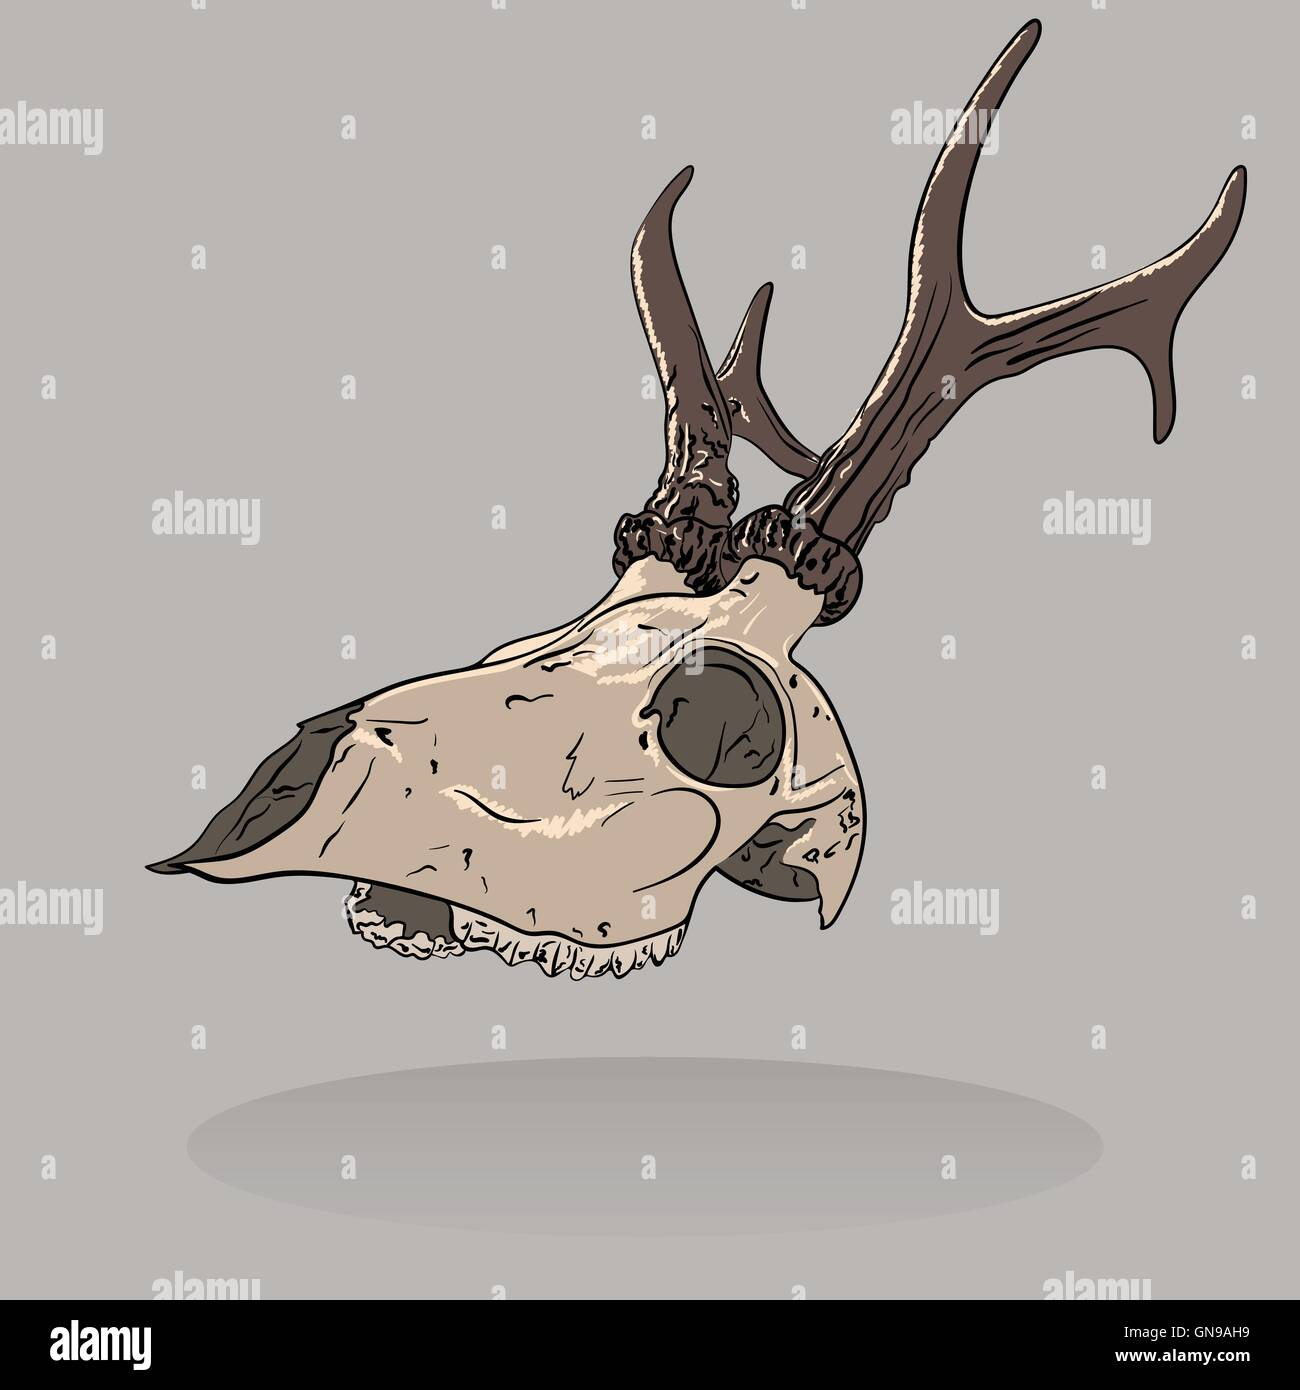 Vector illustration of an isolated deer skull . Profile view. - Stock Image